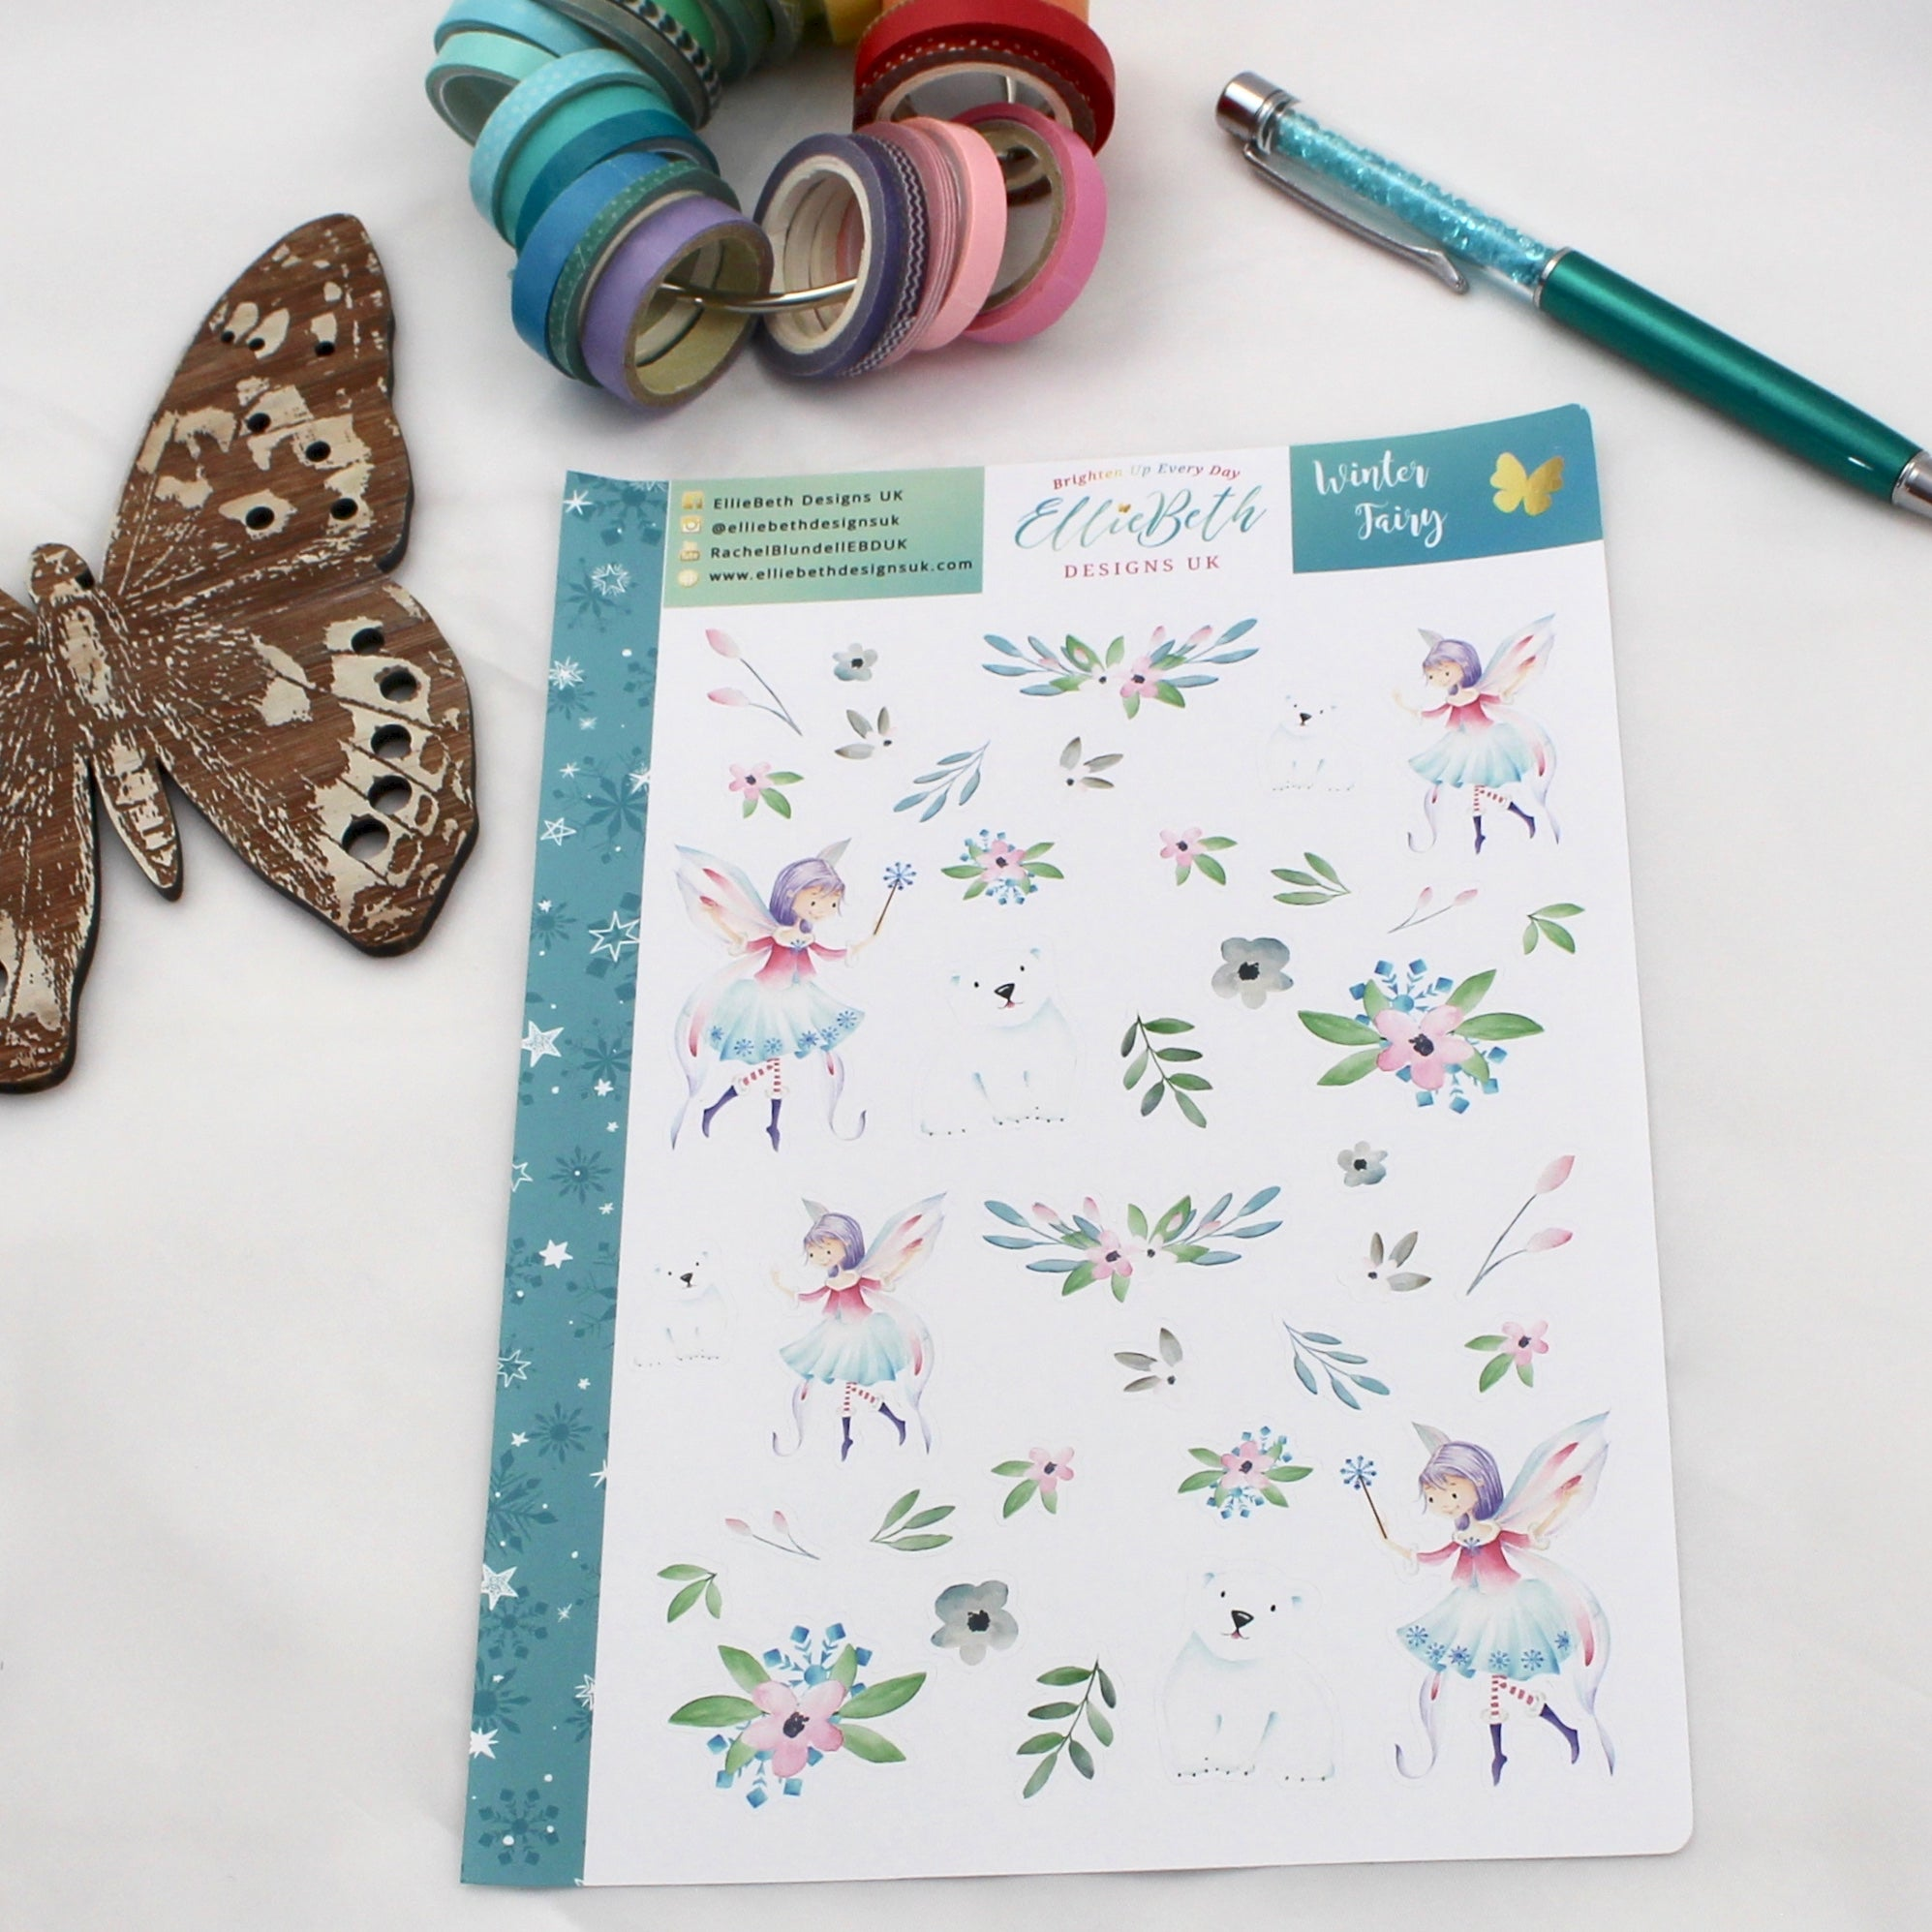 'Winter Fairy' - Decorative Sheet -  A5 binder ready planner stickers